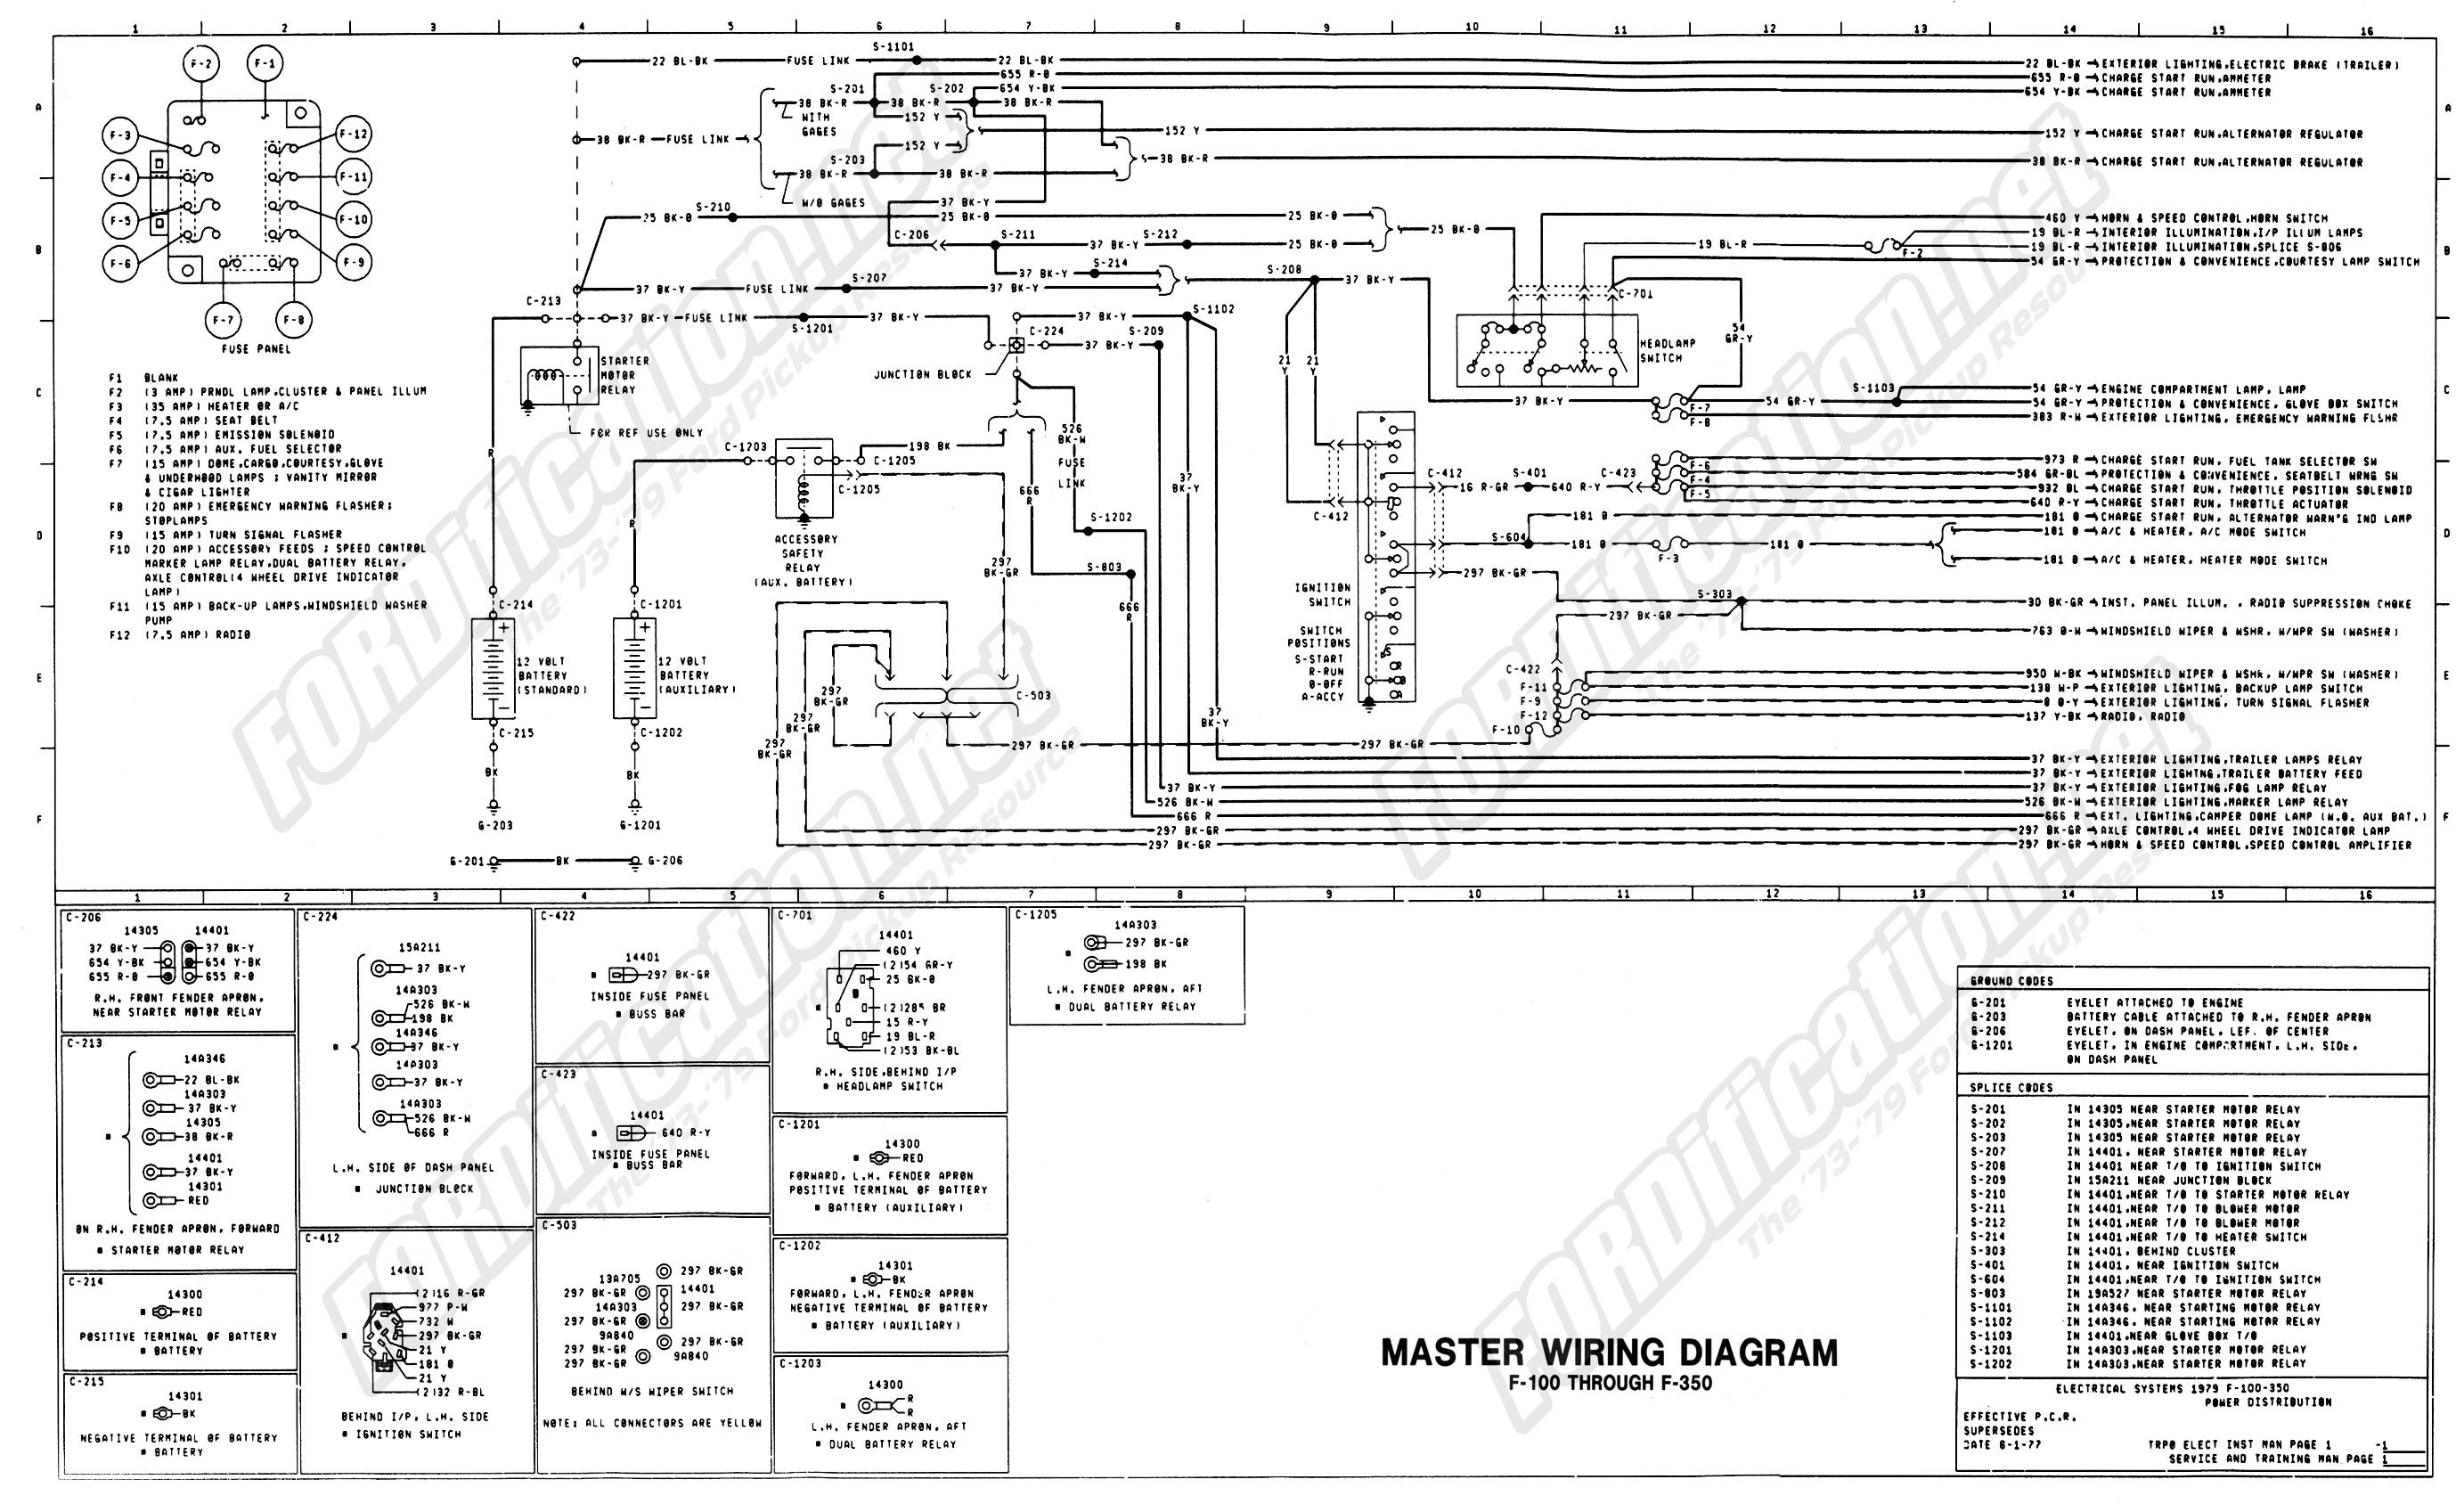 Ford 6 0 Engine Diagram 79 F150 solenoid Wiring Diagram ford Truck  Enthusiasts forums Of Ford